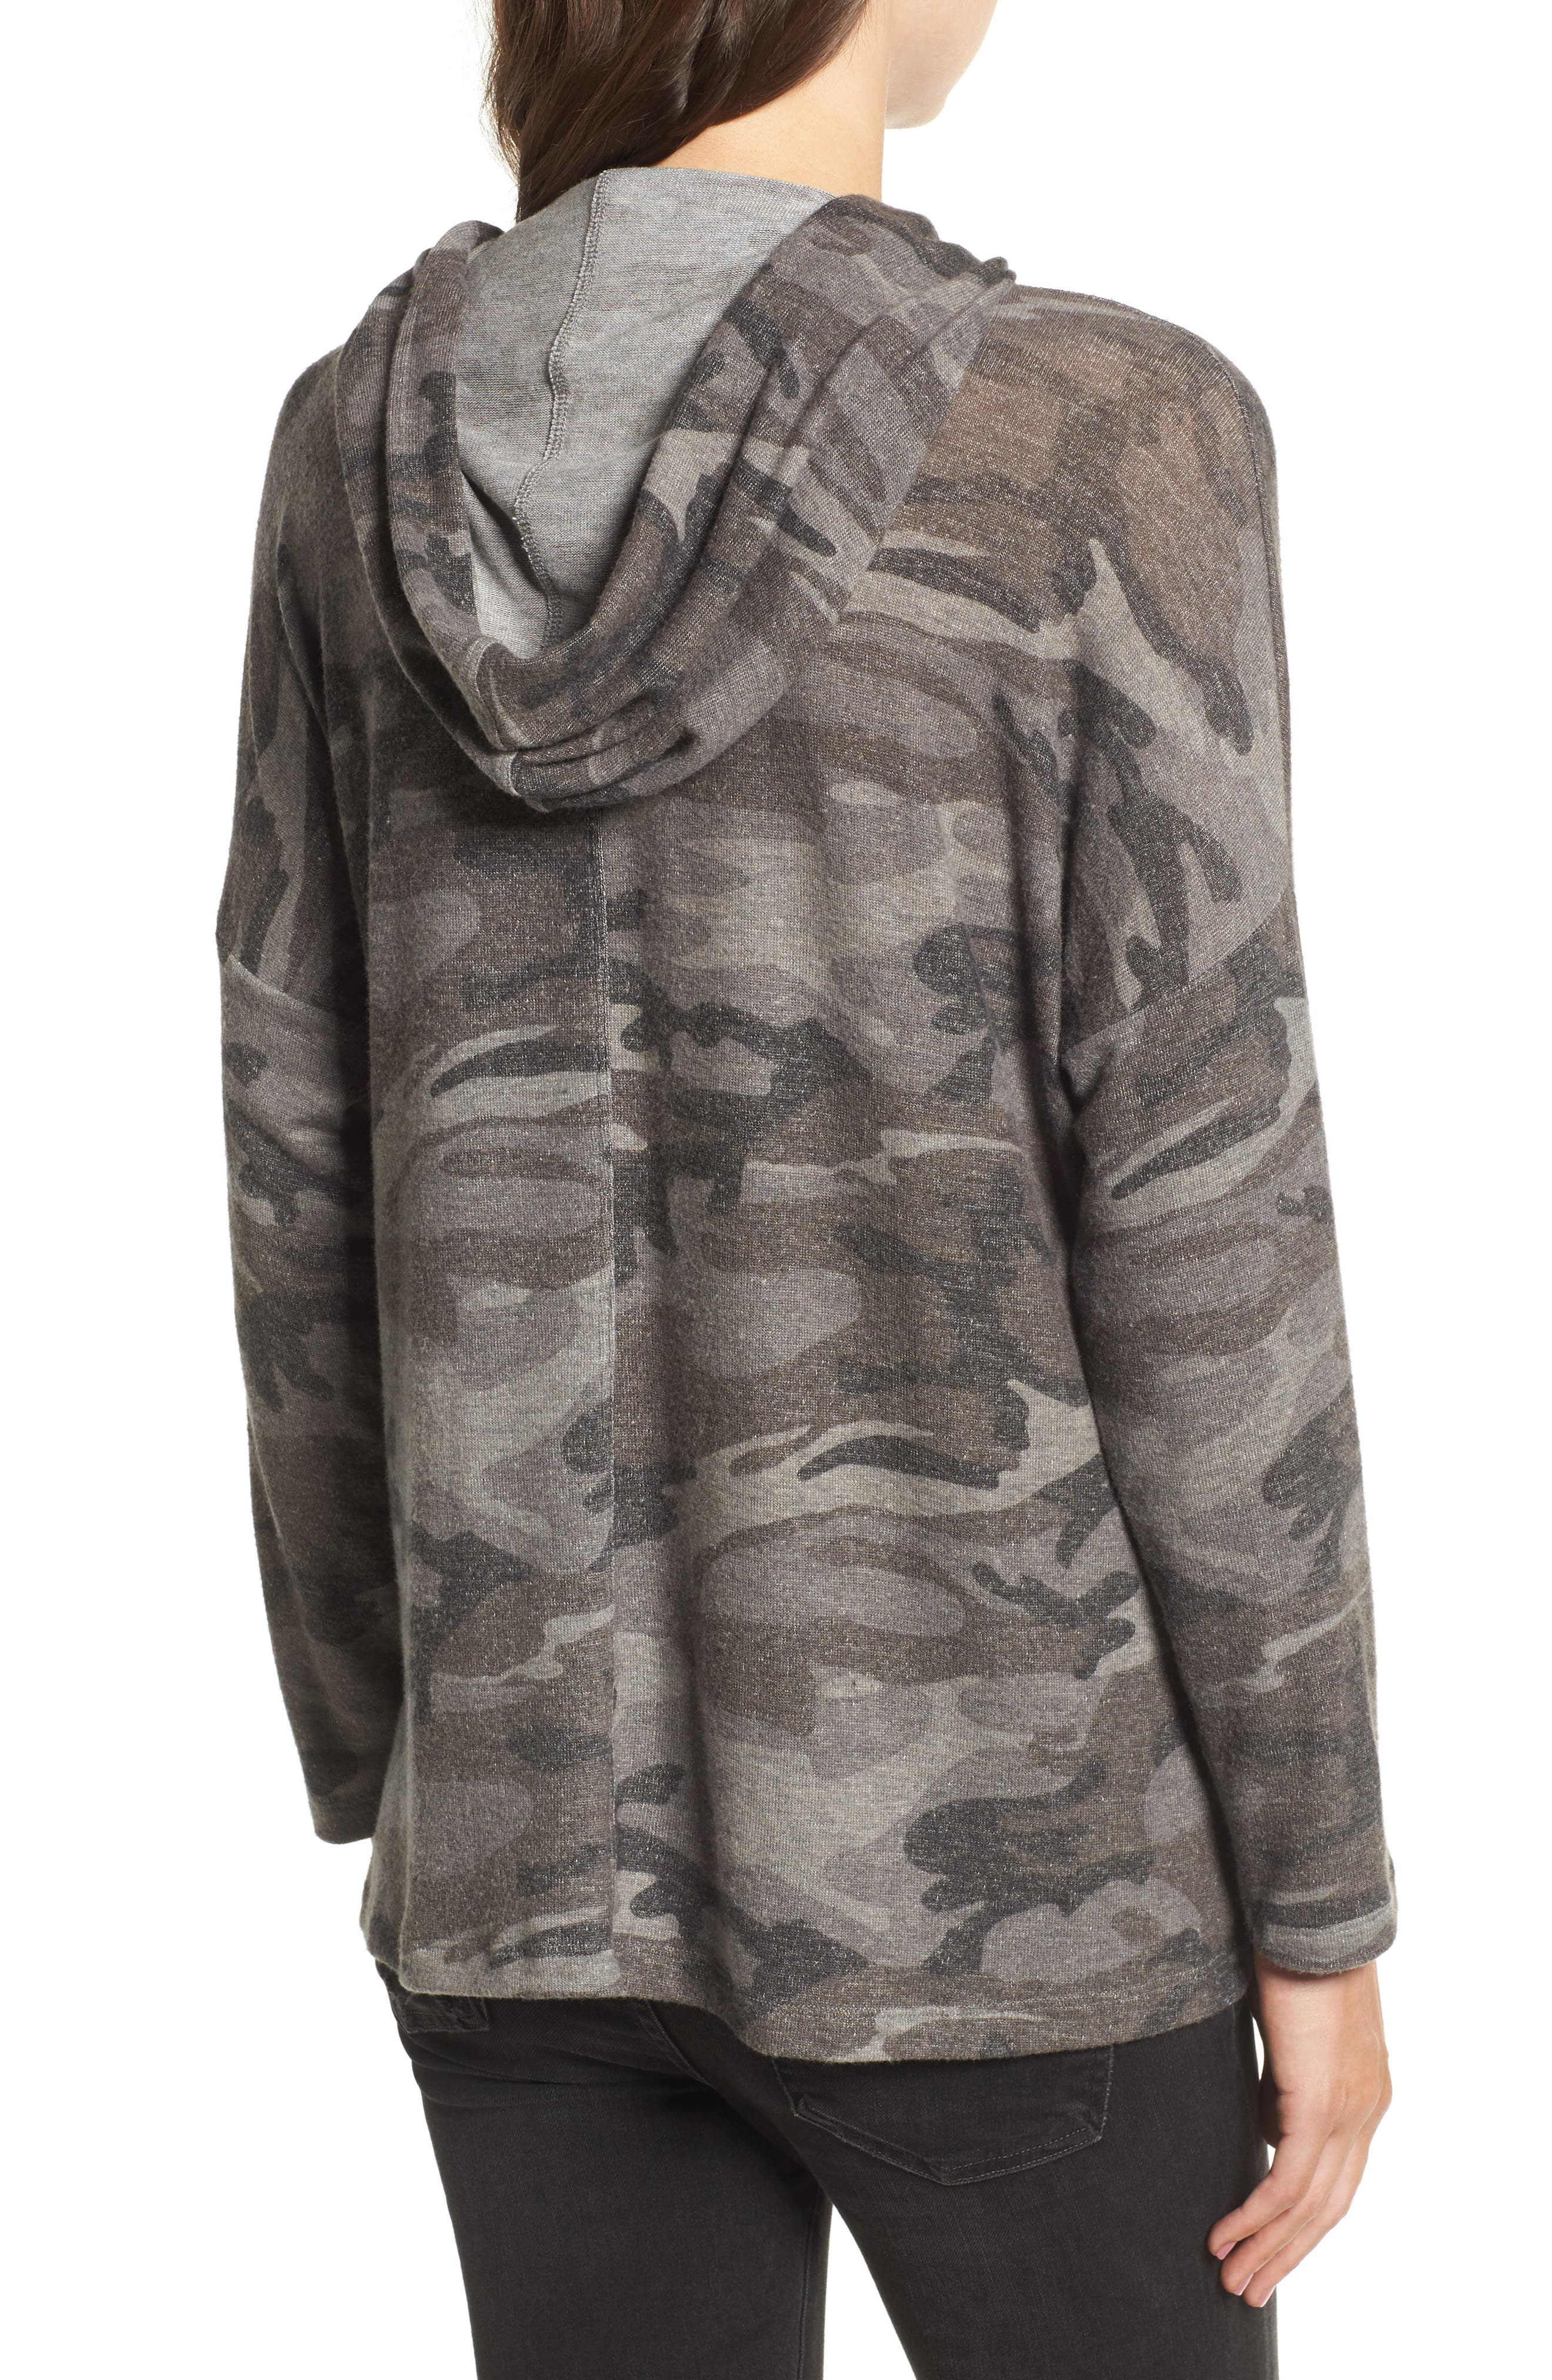 Army of Lovers Camo Hoodie,                             Alternate thumbnail 2, color,                             Charcoal Camo